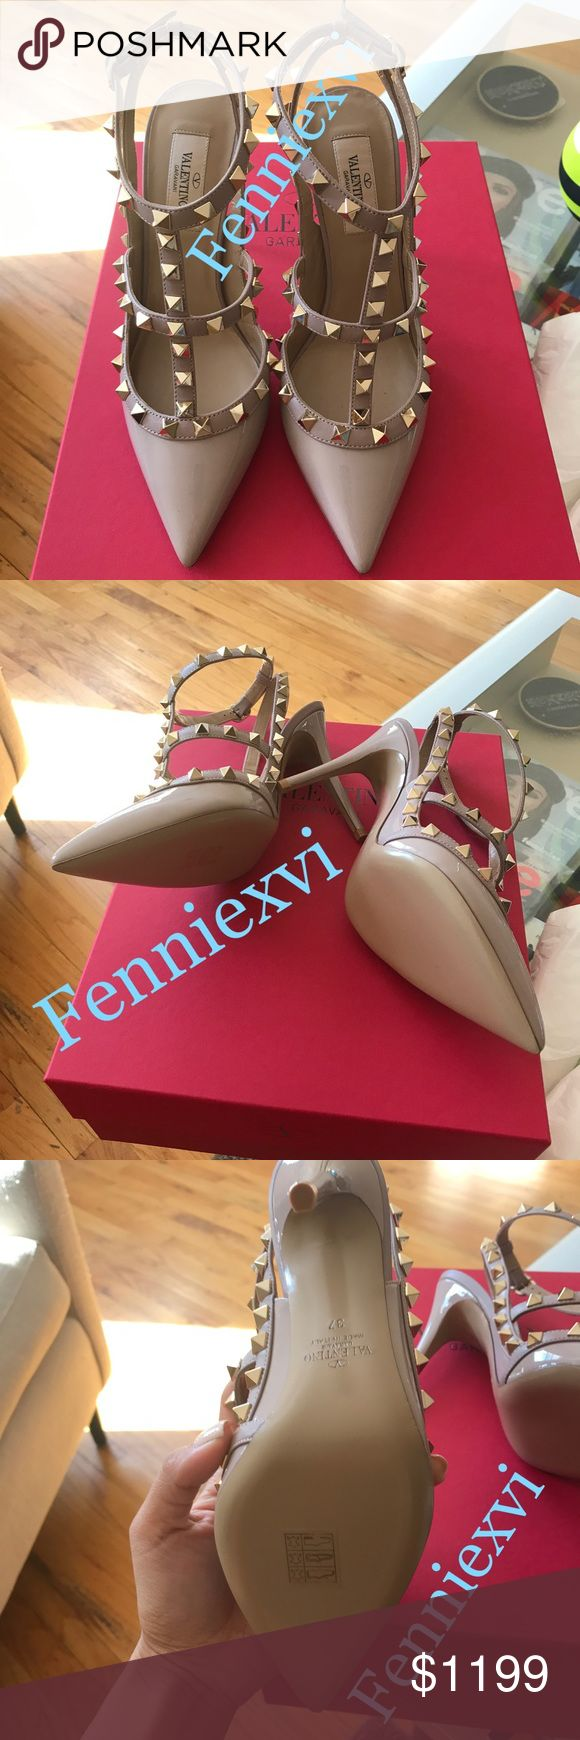 Valentino Rockstud Pumps Nude Patent Size 7 100% authentic, brand new! Highly sought after classic color, sold out! Comes with original box and dustbag. NO TRADES! vixfennie@gmail for offers, questions and pictures. Look at my previous sales and comments from buyers. NO SCAMMERS🙅 Valentino Shoes Heels